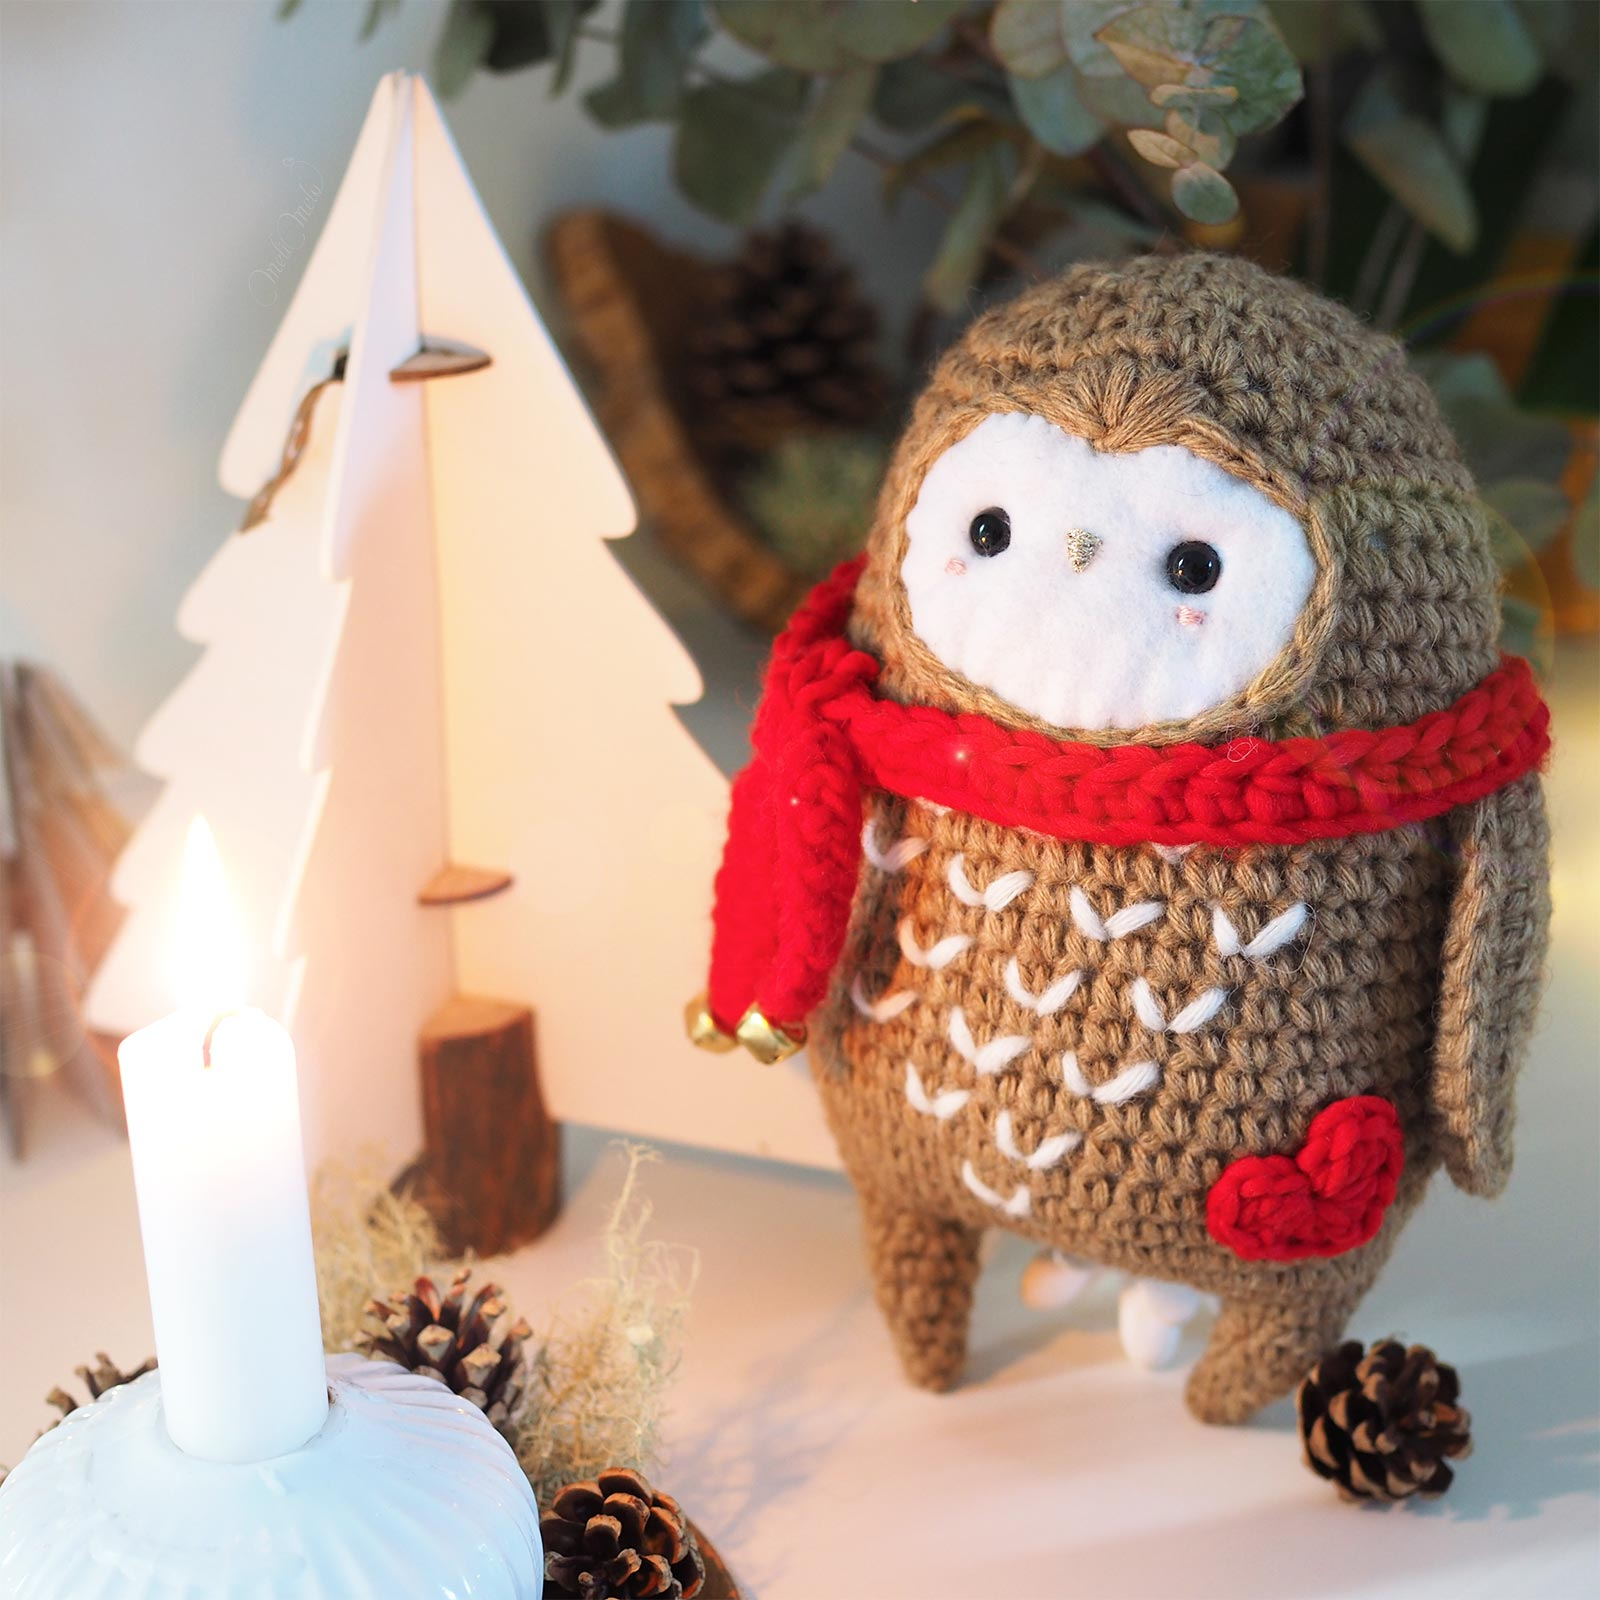 Noël crochet chouette owl écharpe coeur rouge The Petite Wool We Are Knitters boutique melimelo